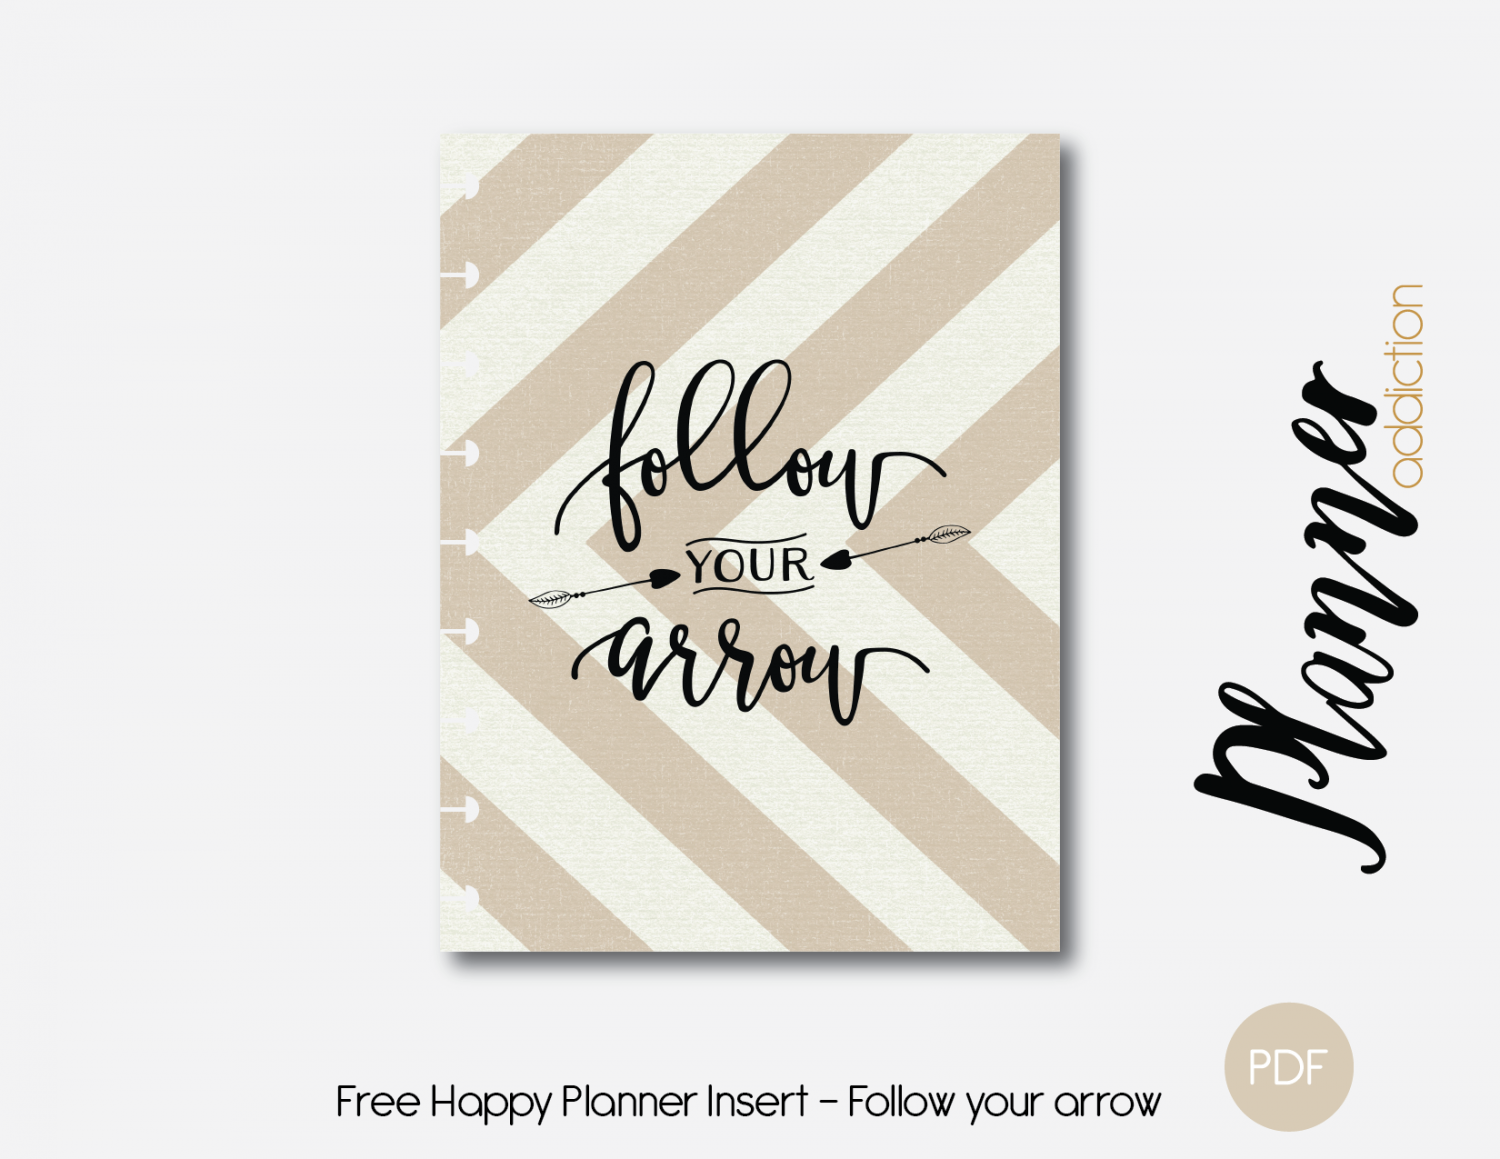 Free Printable Insert & cover for Happy Planner - Follow